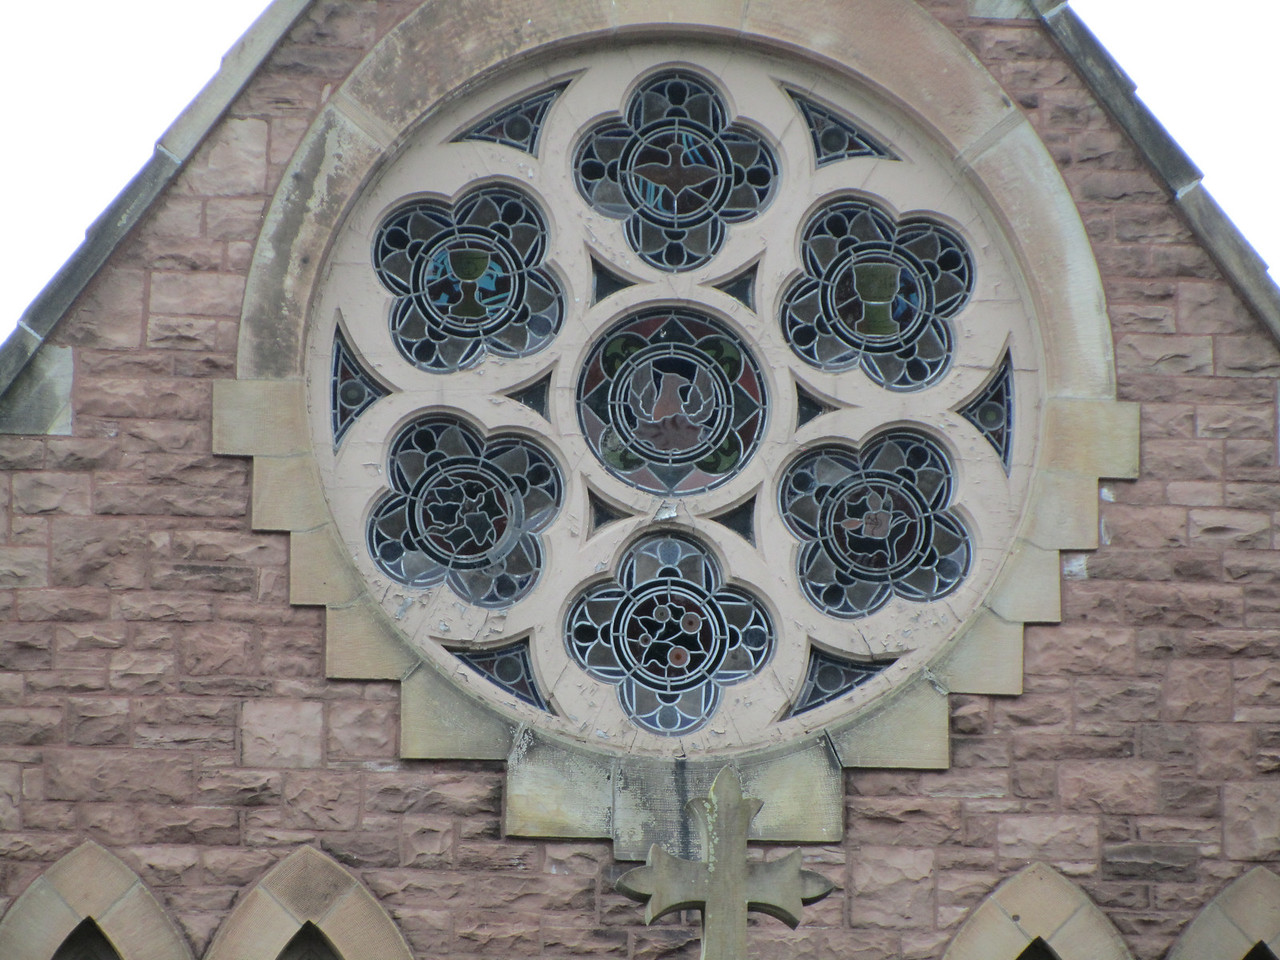 Rose Window ala Notra Dame.